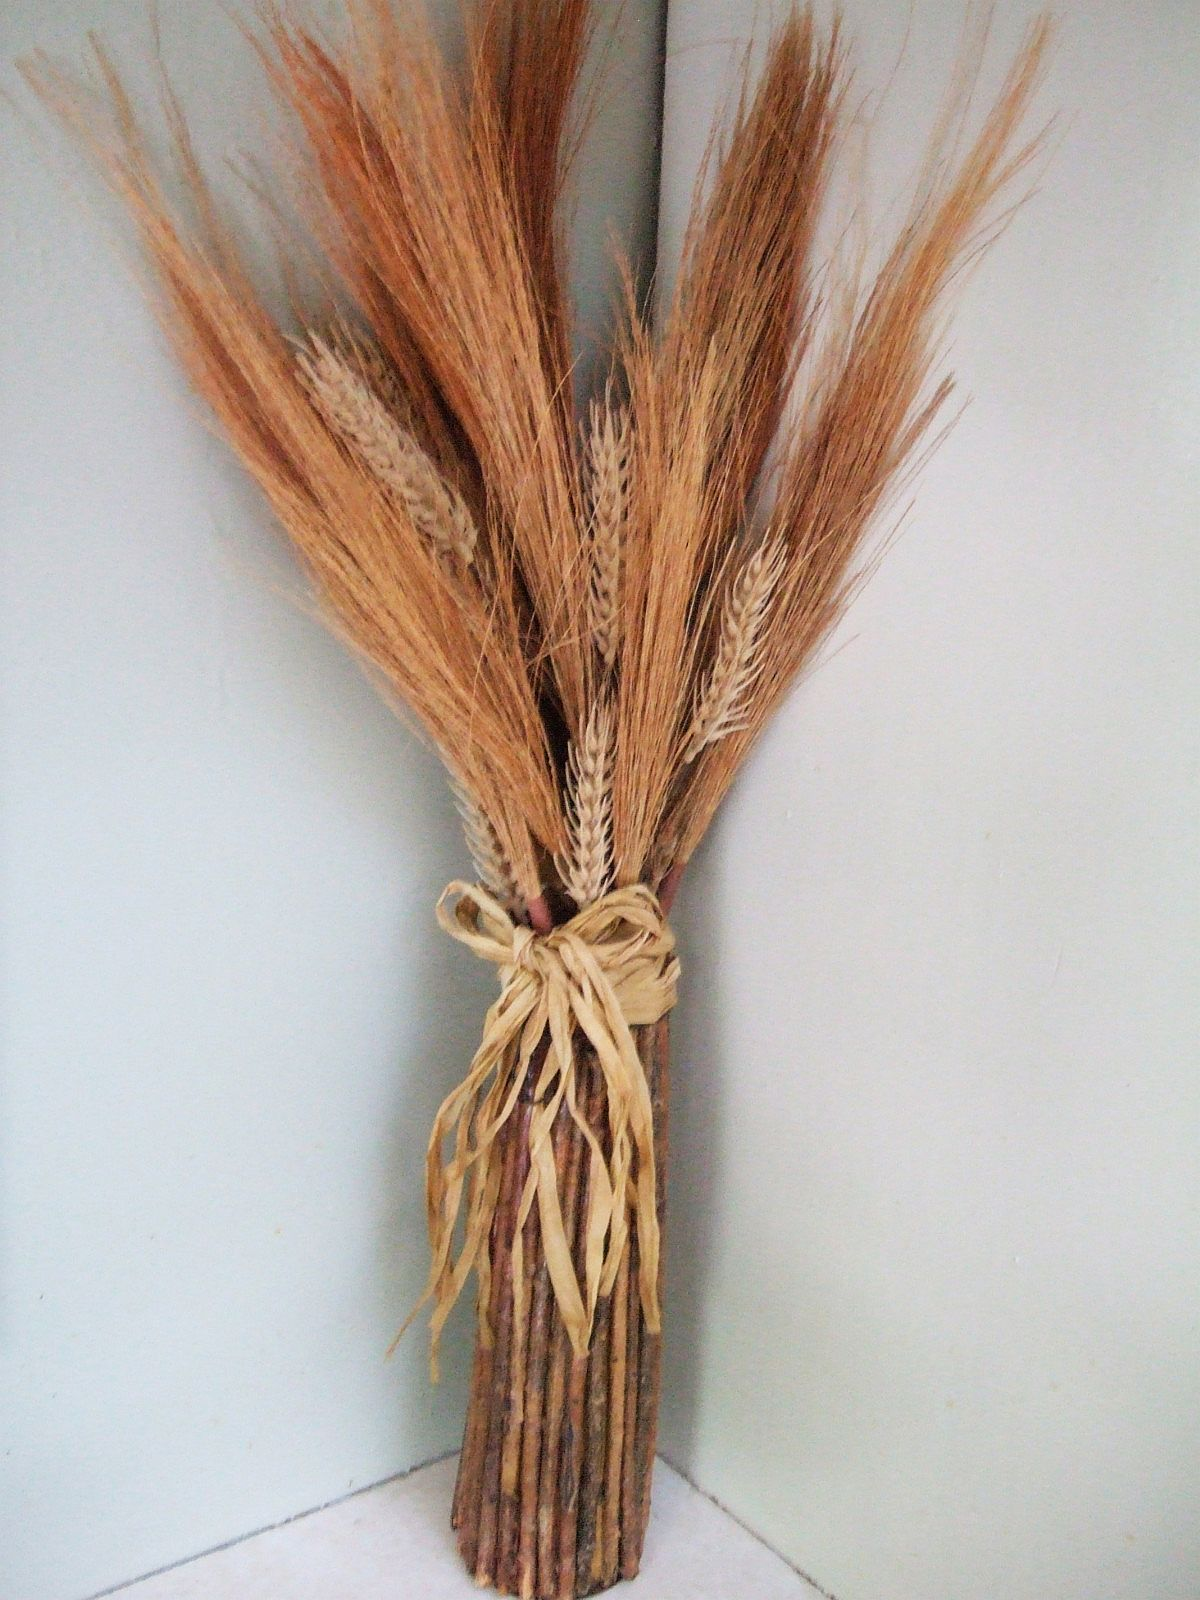 Dried Wheat Grass Fall Autumn Thanksgiving Floral